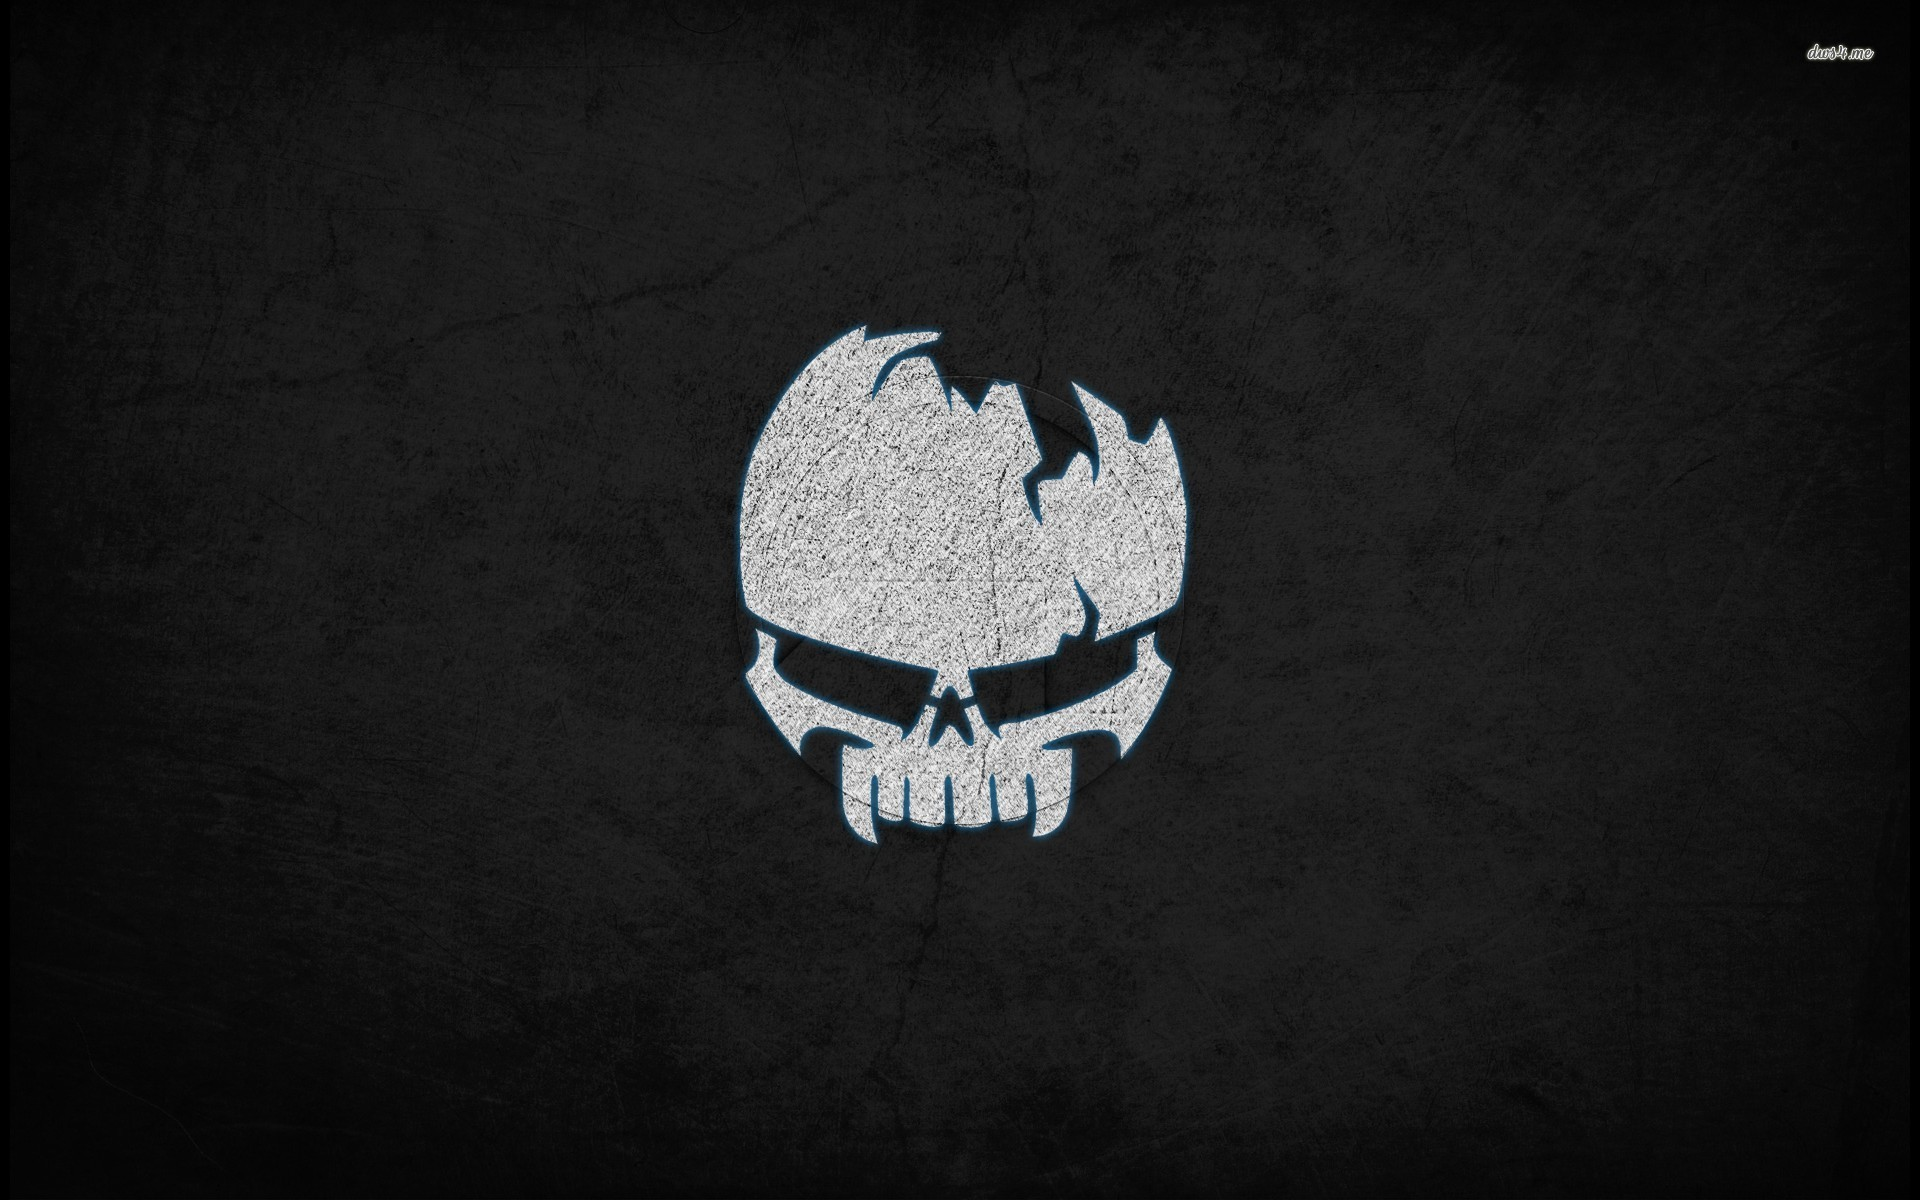 Skull wallpaper   Vector wallpapers   21051 1920x1200